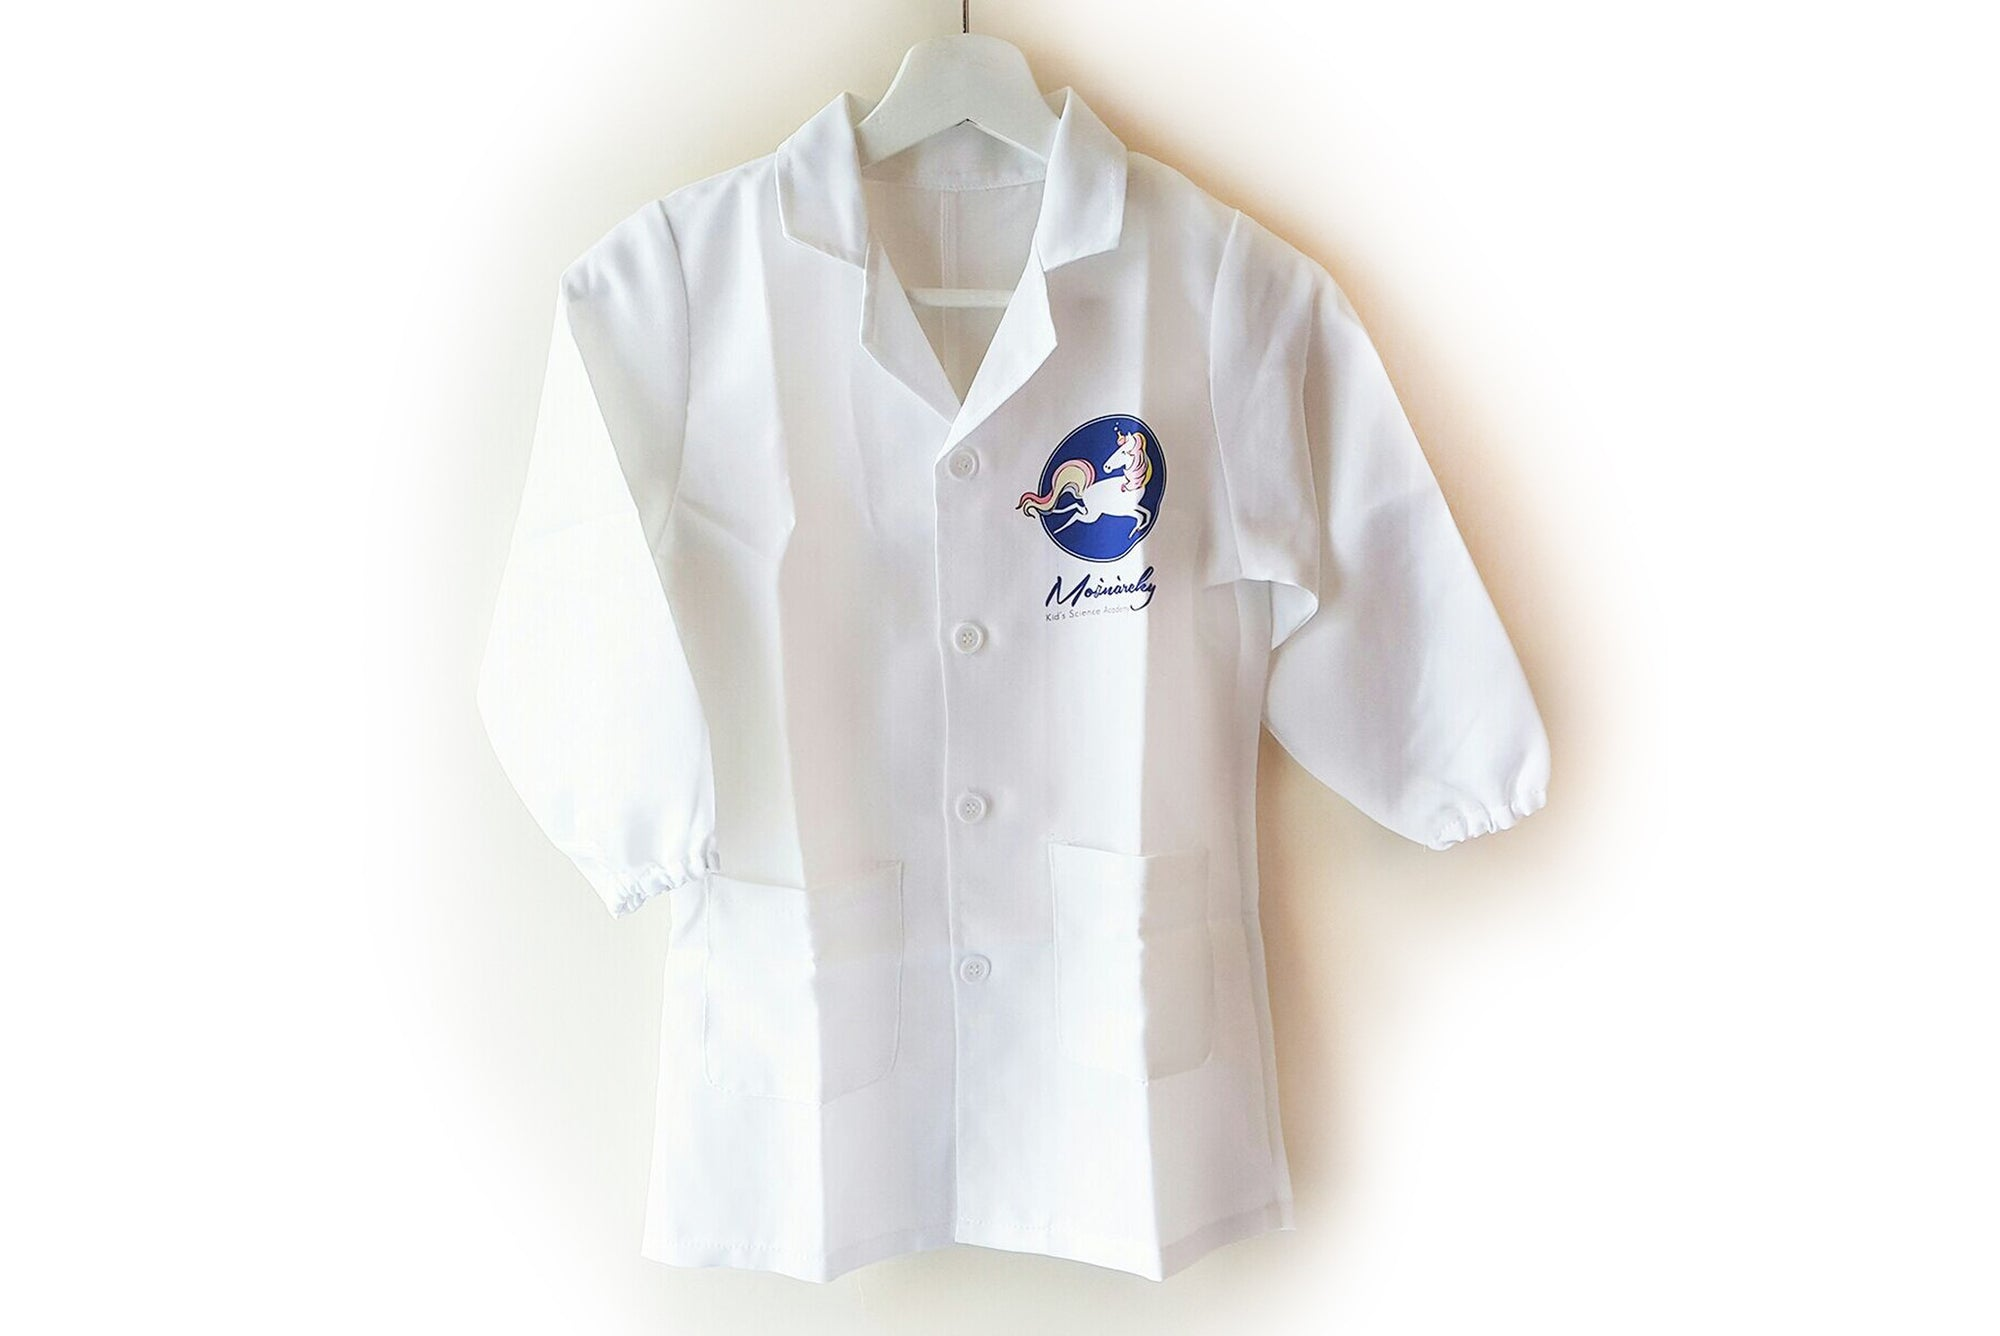 Scientist Lab Coat - Moinàrchy MIY (HK)